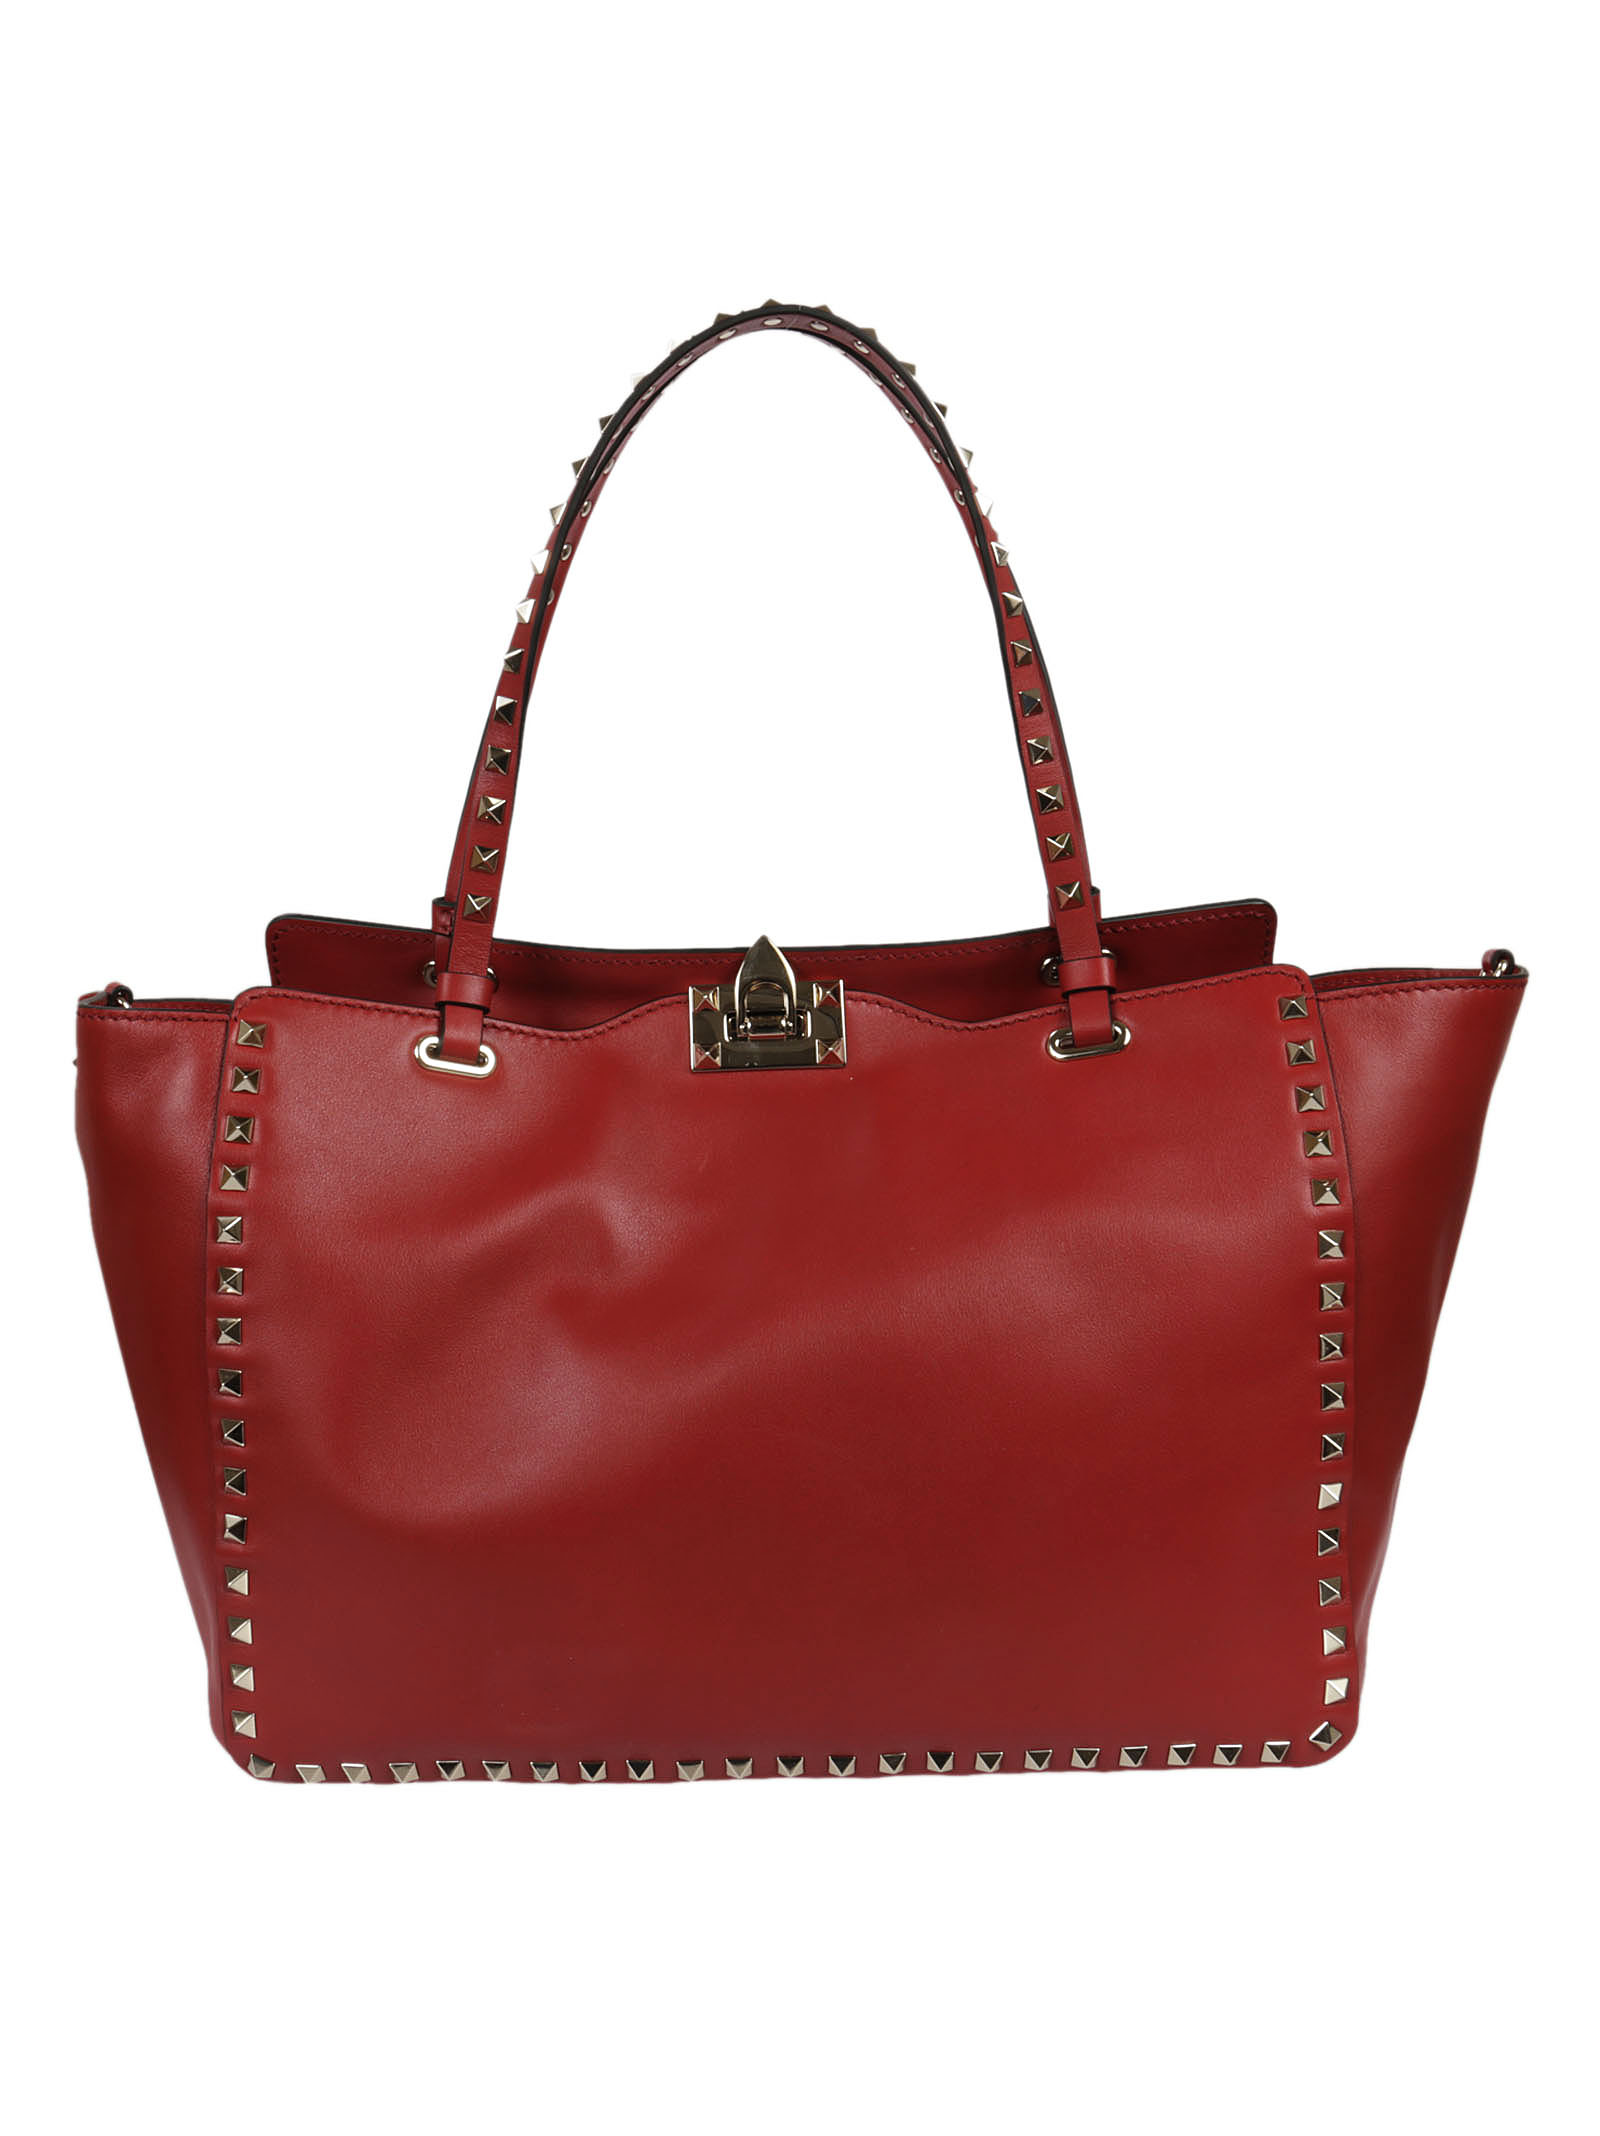 Valentino Garavani SHOPPING BAG